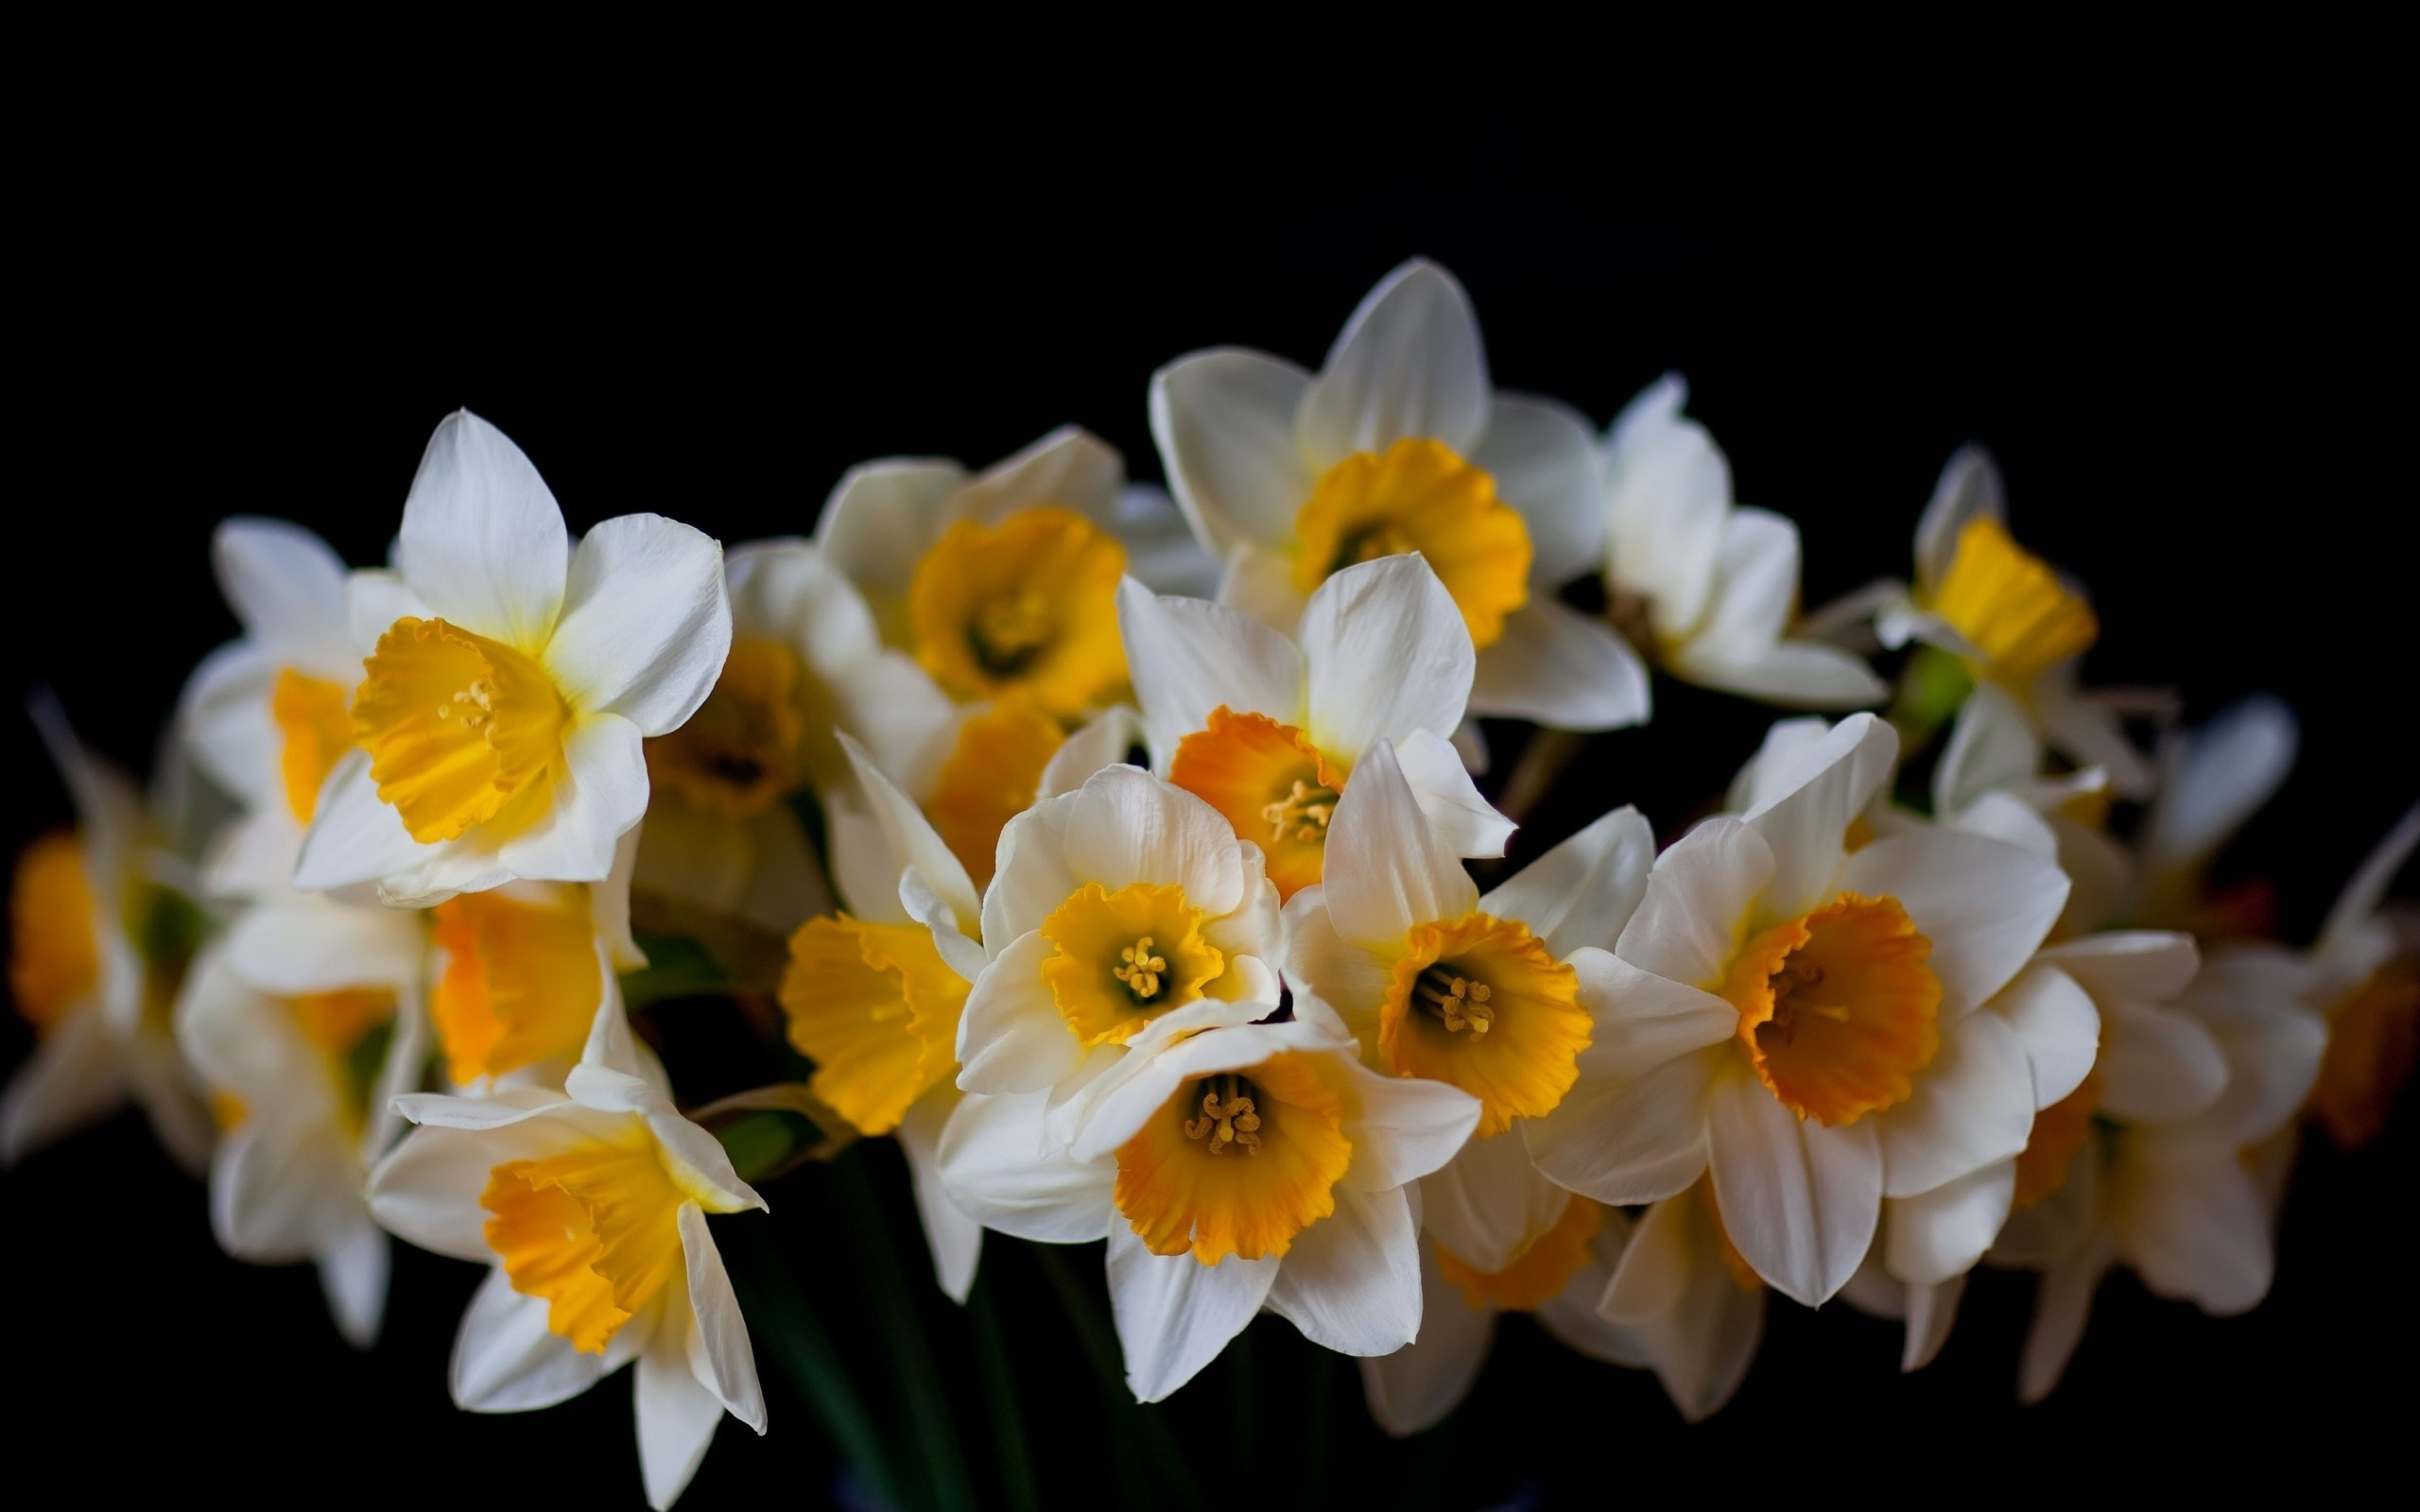 beautiful flowers daffodils